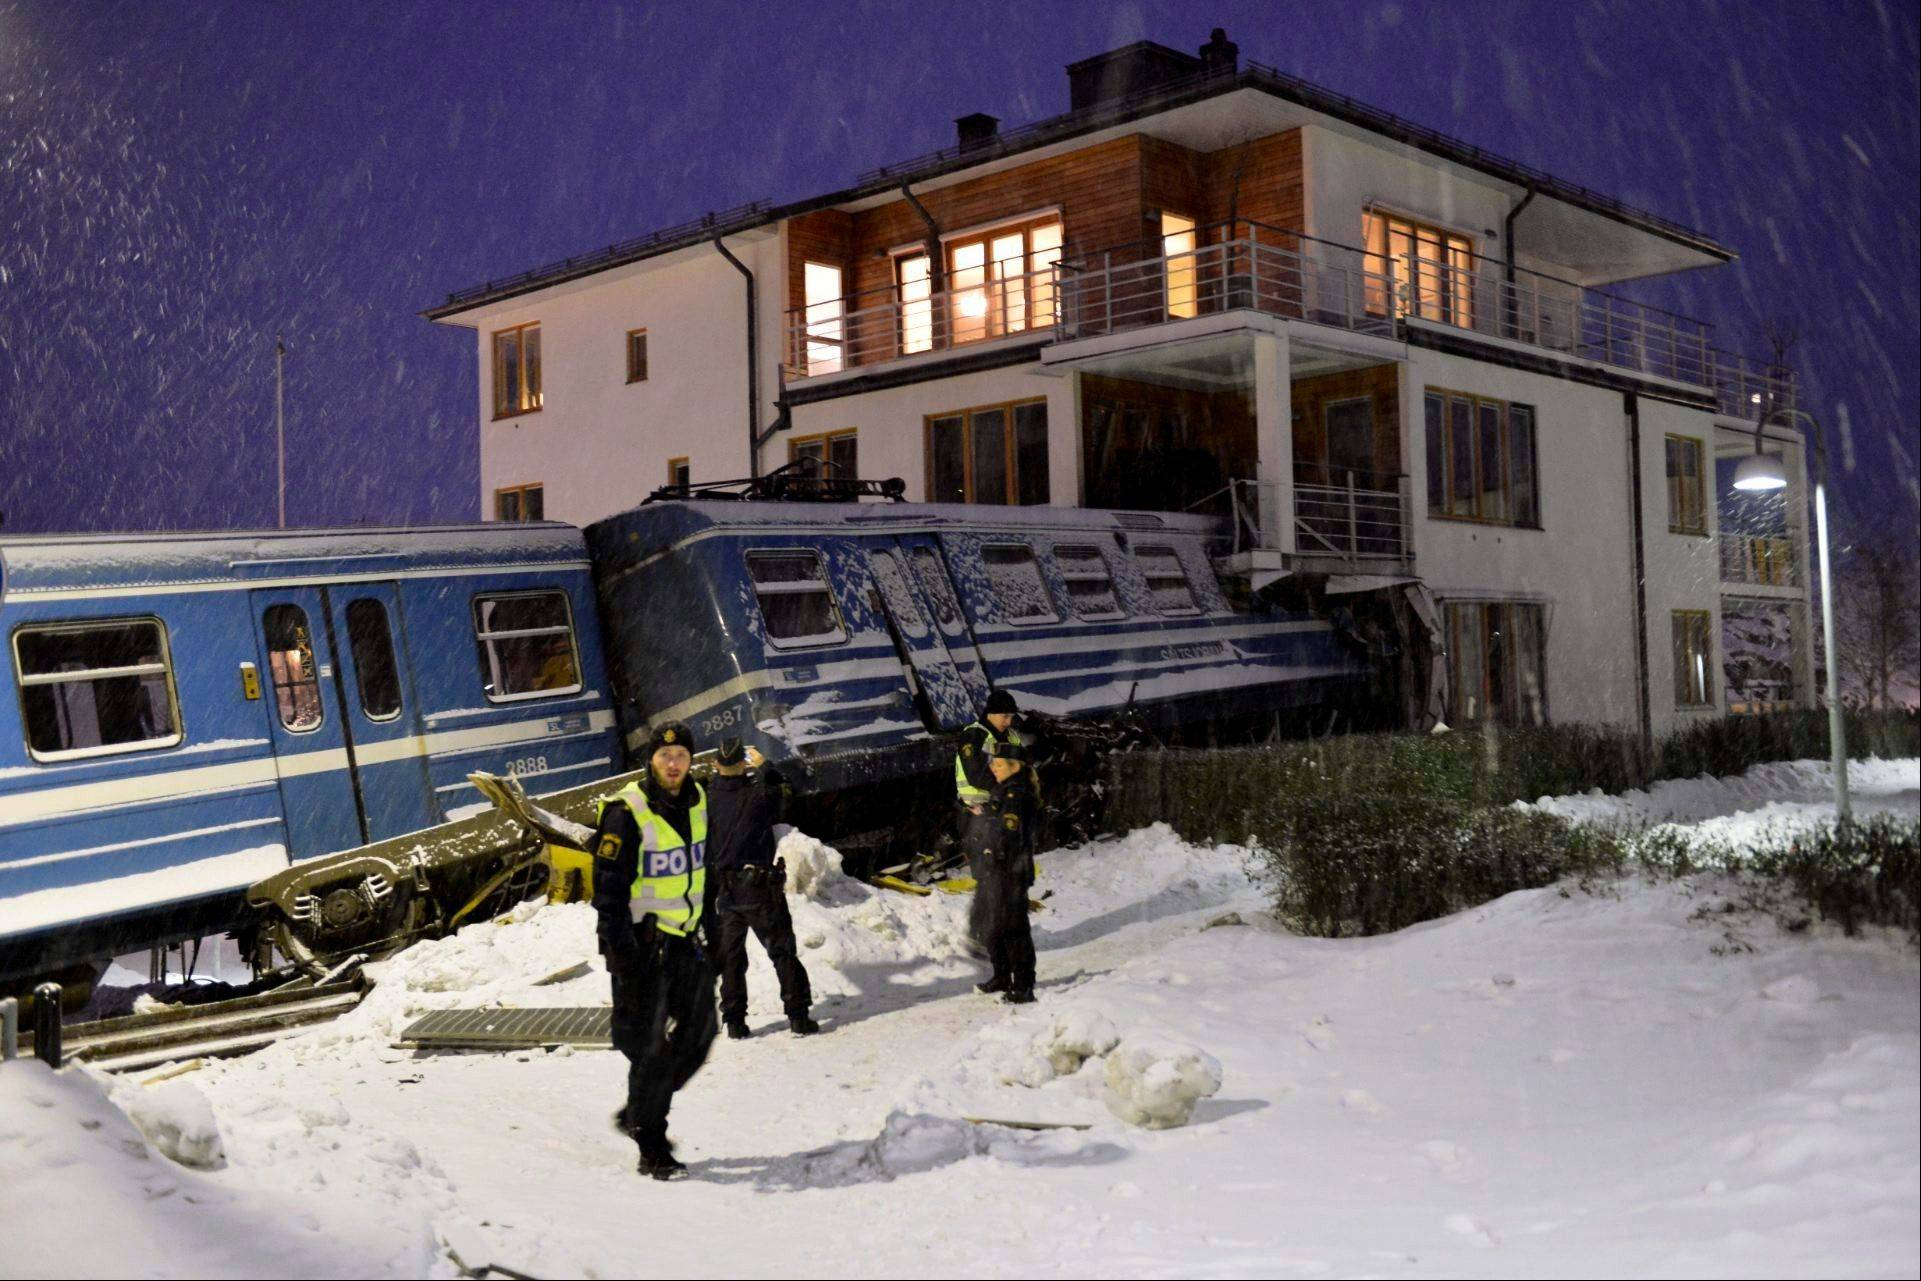 Emergency services attend the scene after a derailed train crashed into the side of a residential building in Saltsjobaden outside Stockholm, Tuesday Jan, 15, 2013. A woman obtained the keys to the train and drove it away before it crashed into the building. The woman was injured in the incident and there are no reports of injuries of people in the building.